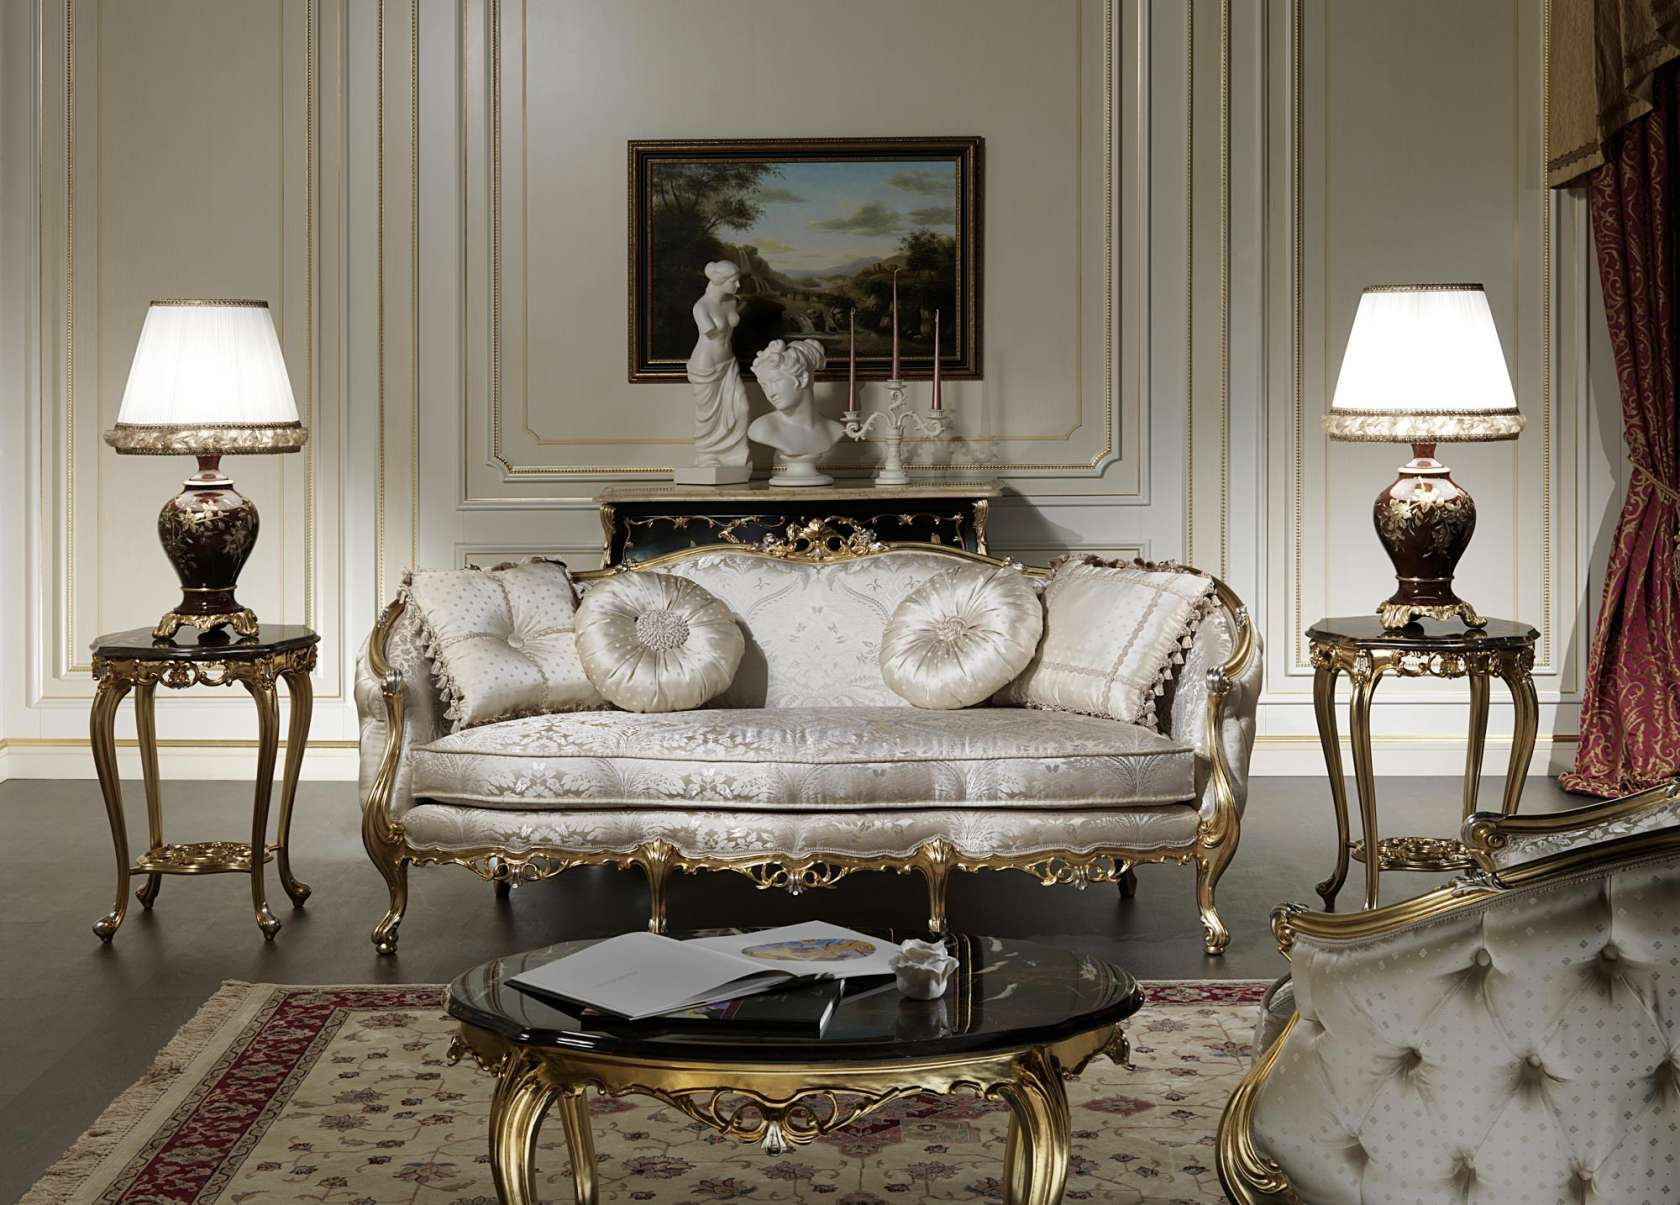 Clic Sofa Of The Venezia Collection